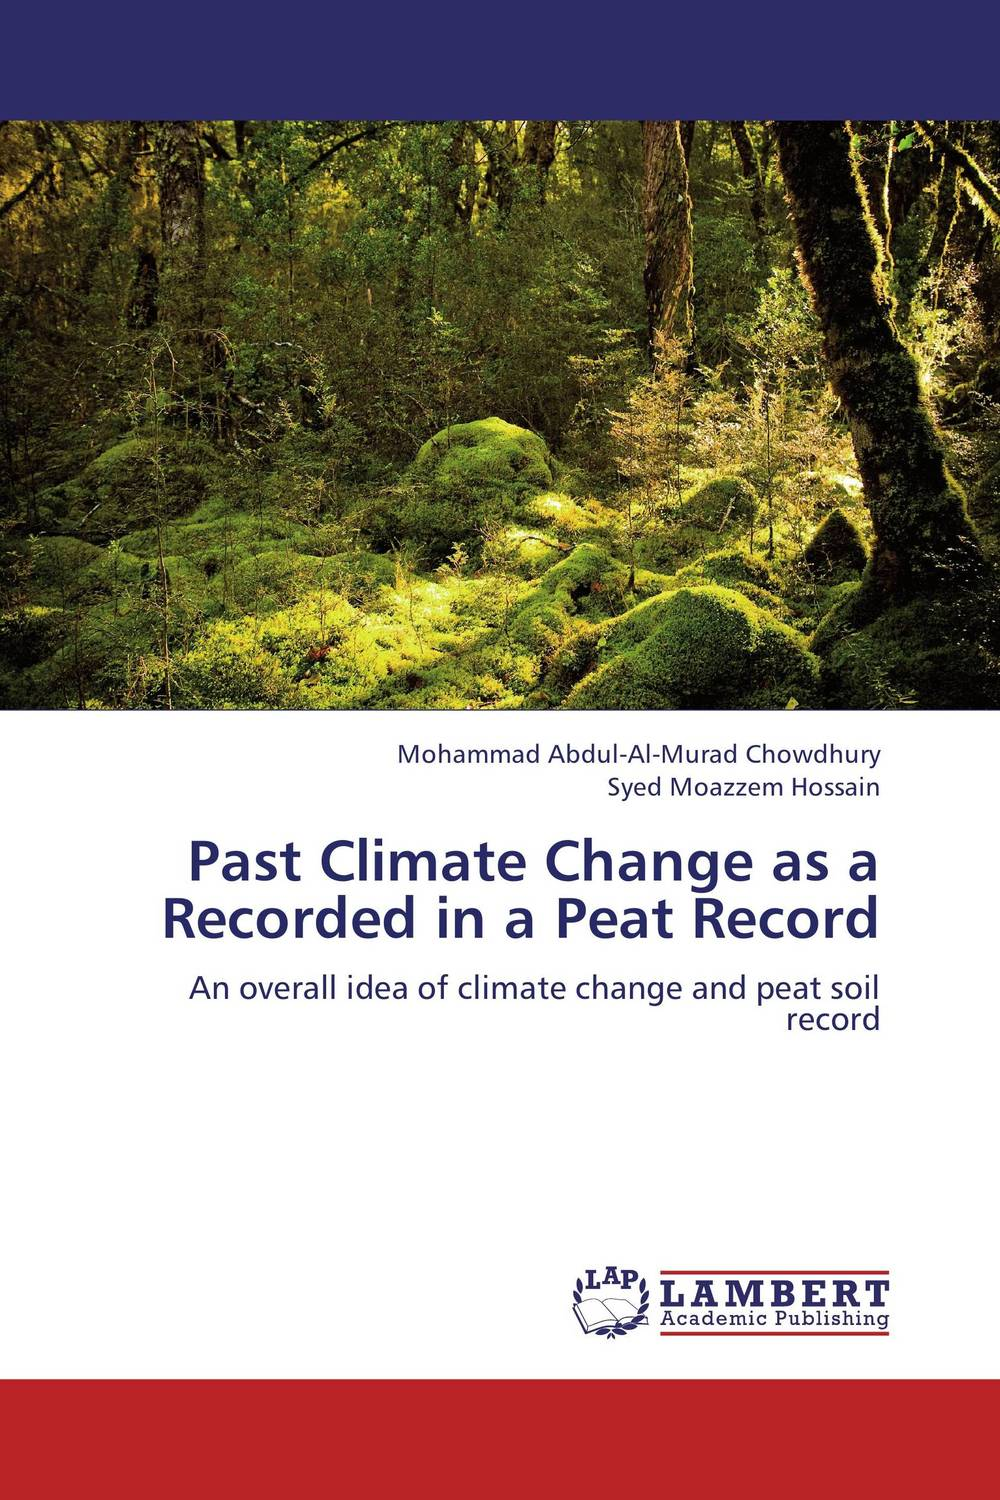 Past Climate Change as a Recorded in a Peat Record a critical analysis of legal framework on climate change